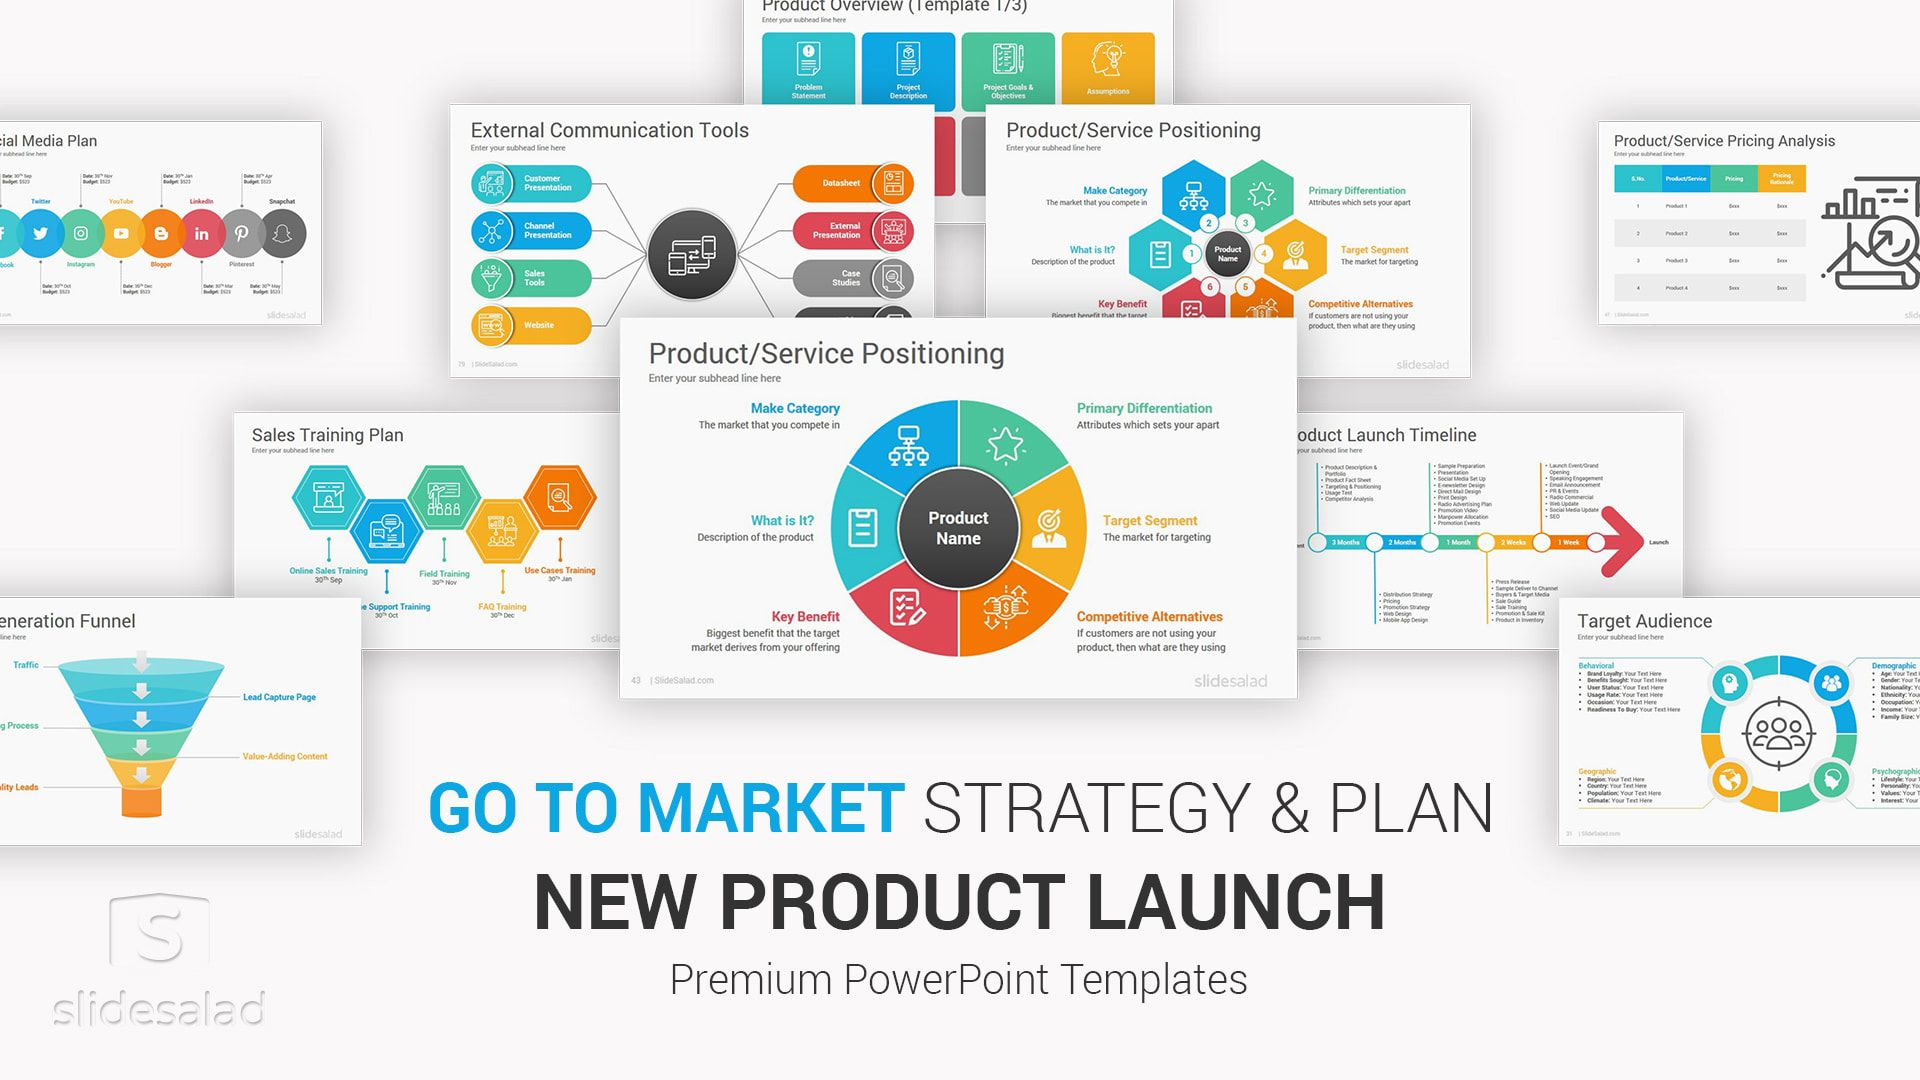 004 Remarkable Free Product Launch Plan Template Ppt Sample Full